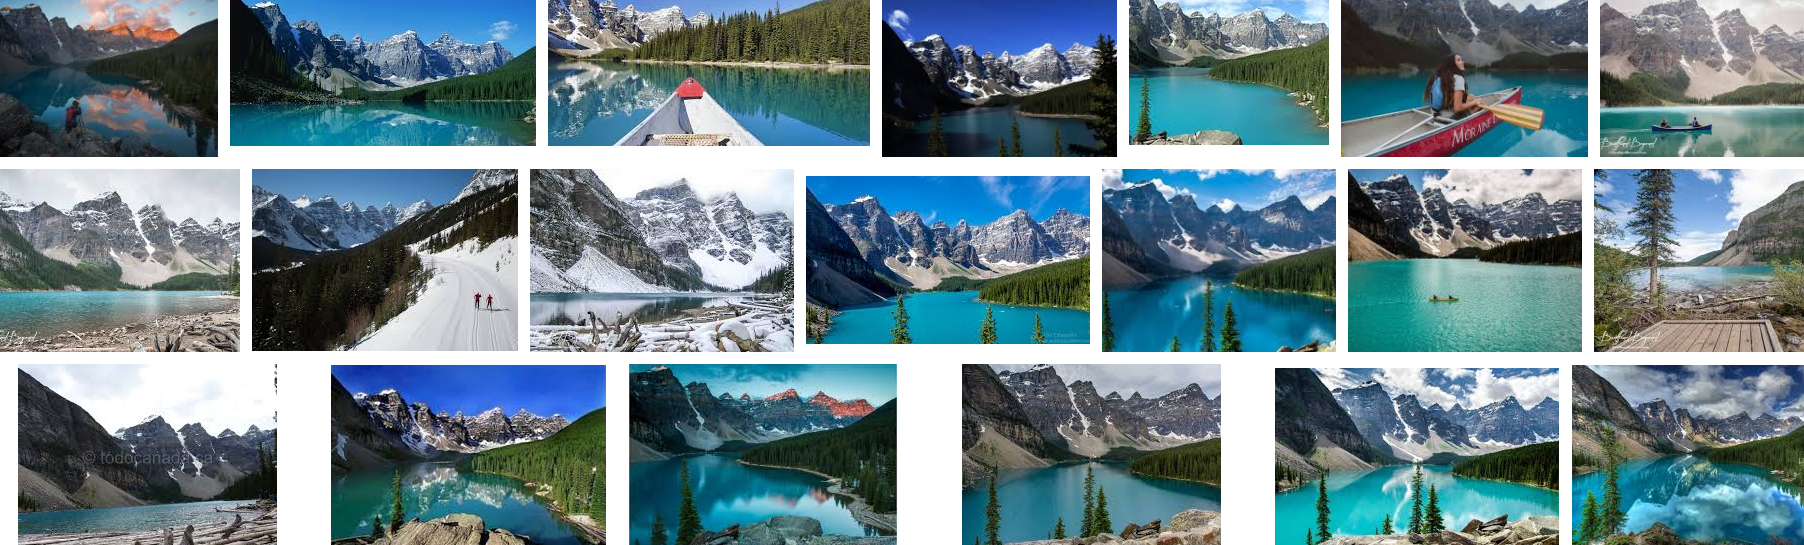 """The top results when you Google """"Moraine Lake"""". The series of jagged peaks and the blue-green water are a staple of the place. While there obviously are a ton of ways you can shoot the lake, this particular angle captures the very essence of what makes the place unique. Hence why I wanted to give it a shot."""